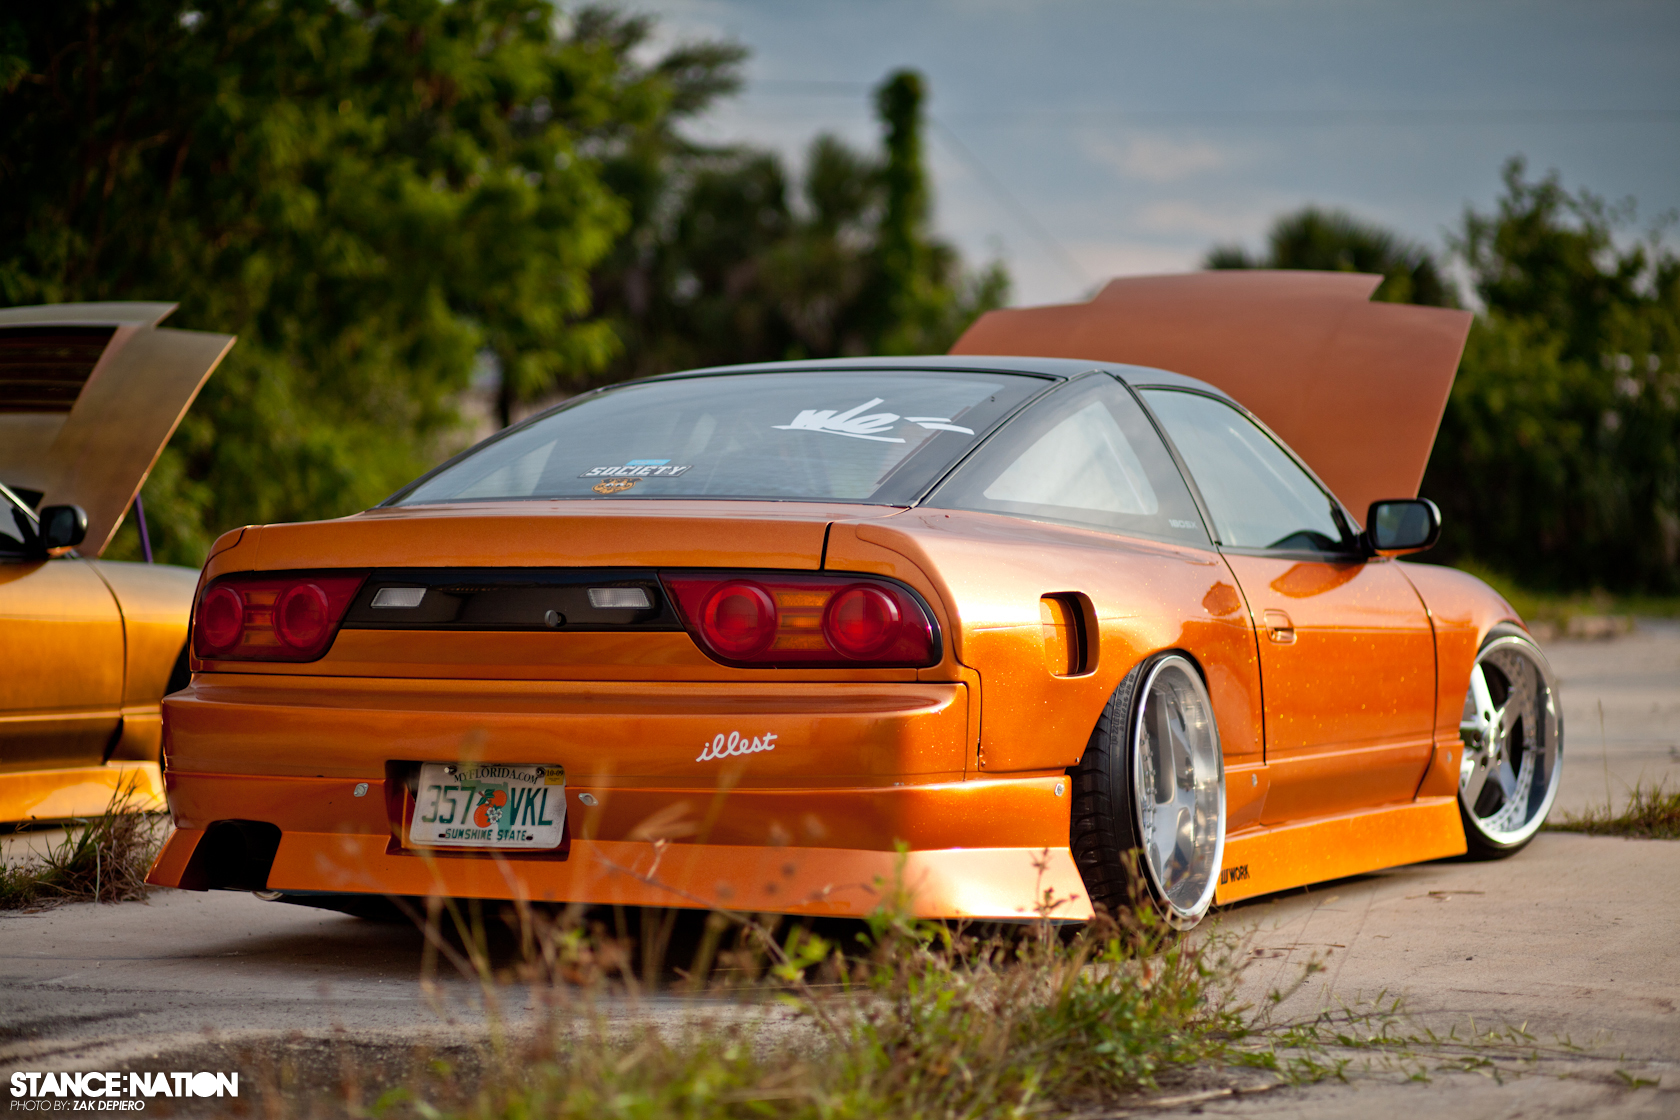 Assetto Corsa Nissan Sileighty Released together with Nissan 240sx Orange Work Equip further Oneviasileighty as well 2014 02 01 archive further Fs Ft Enkei Rp01 17x8 38 17x9 42 5x114 3 Charlotte Nc T490545. on nissan 180sx headlights